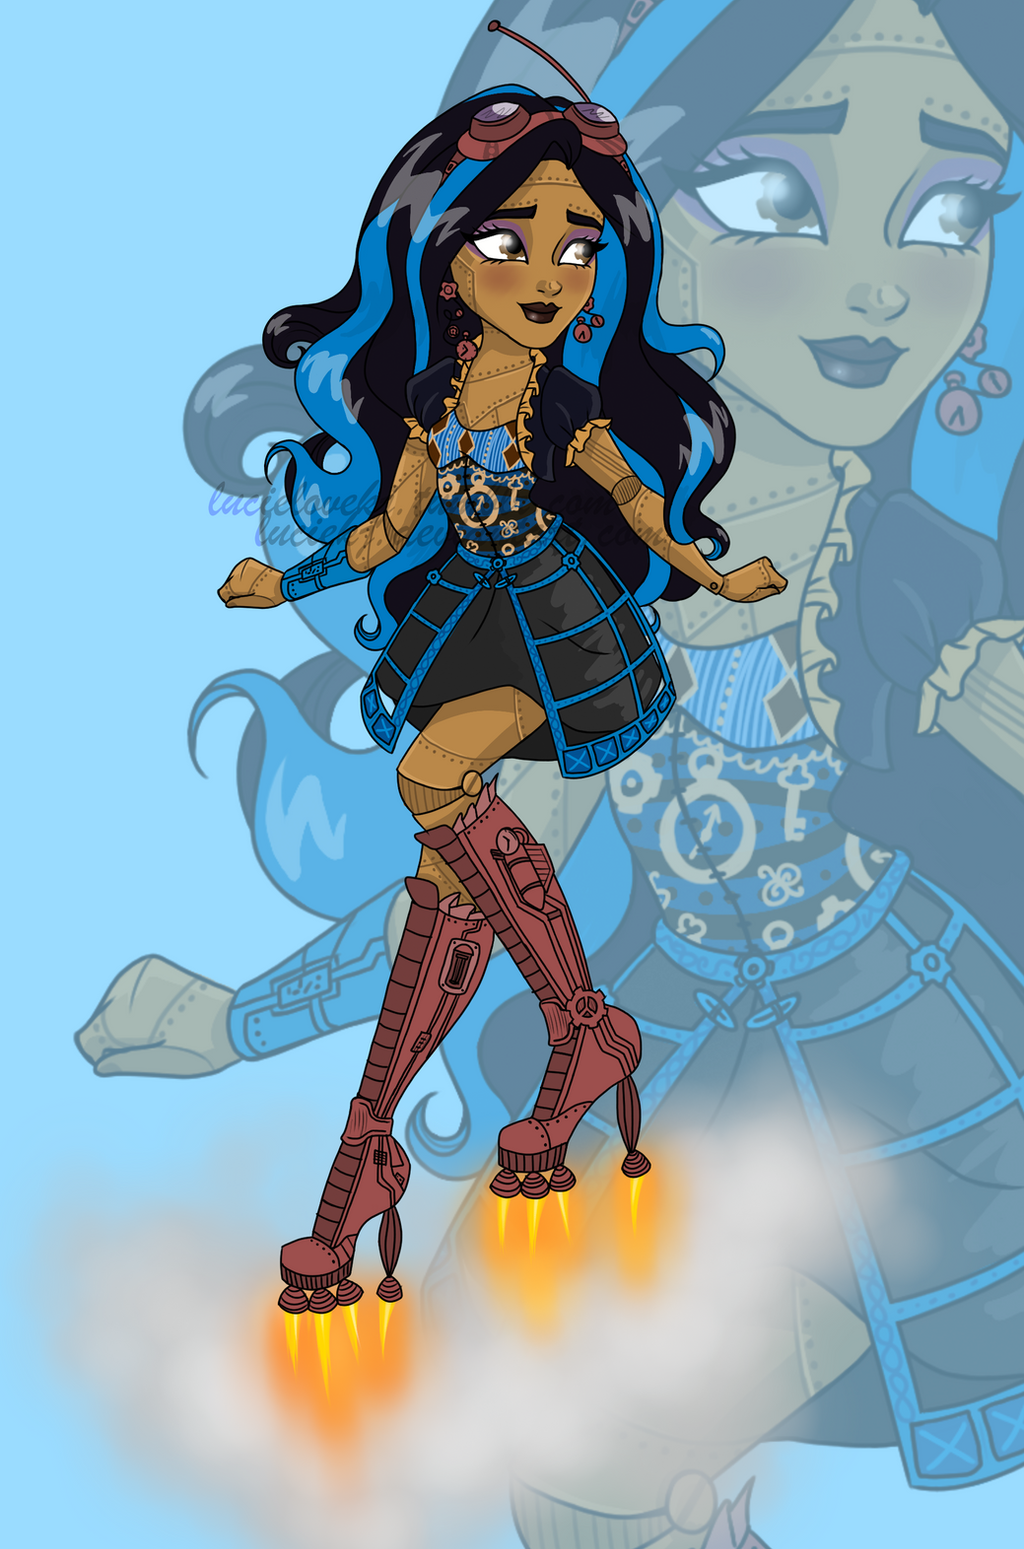 Robecca steam by luciekj on deviantart - Monster high robecca steam ...